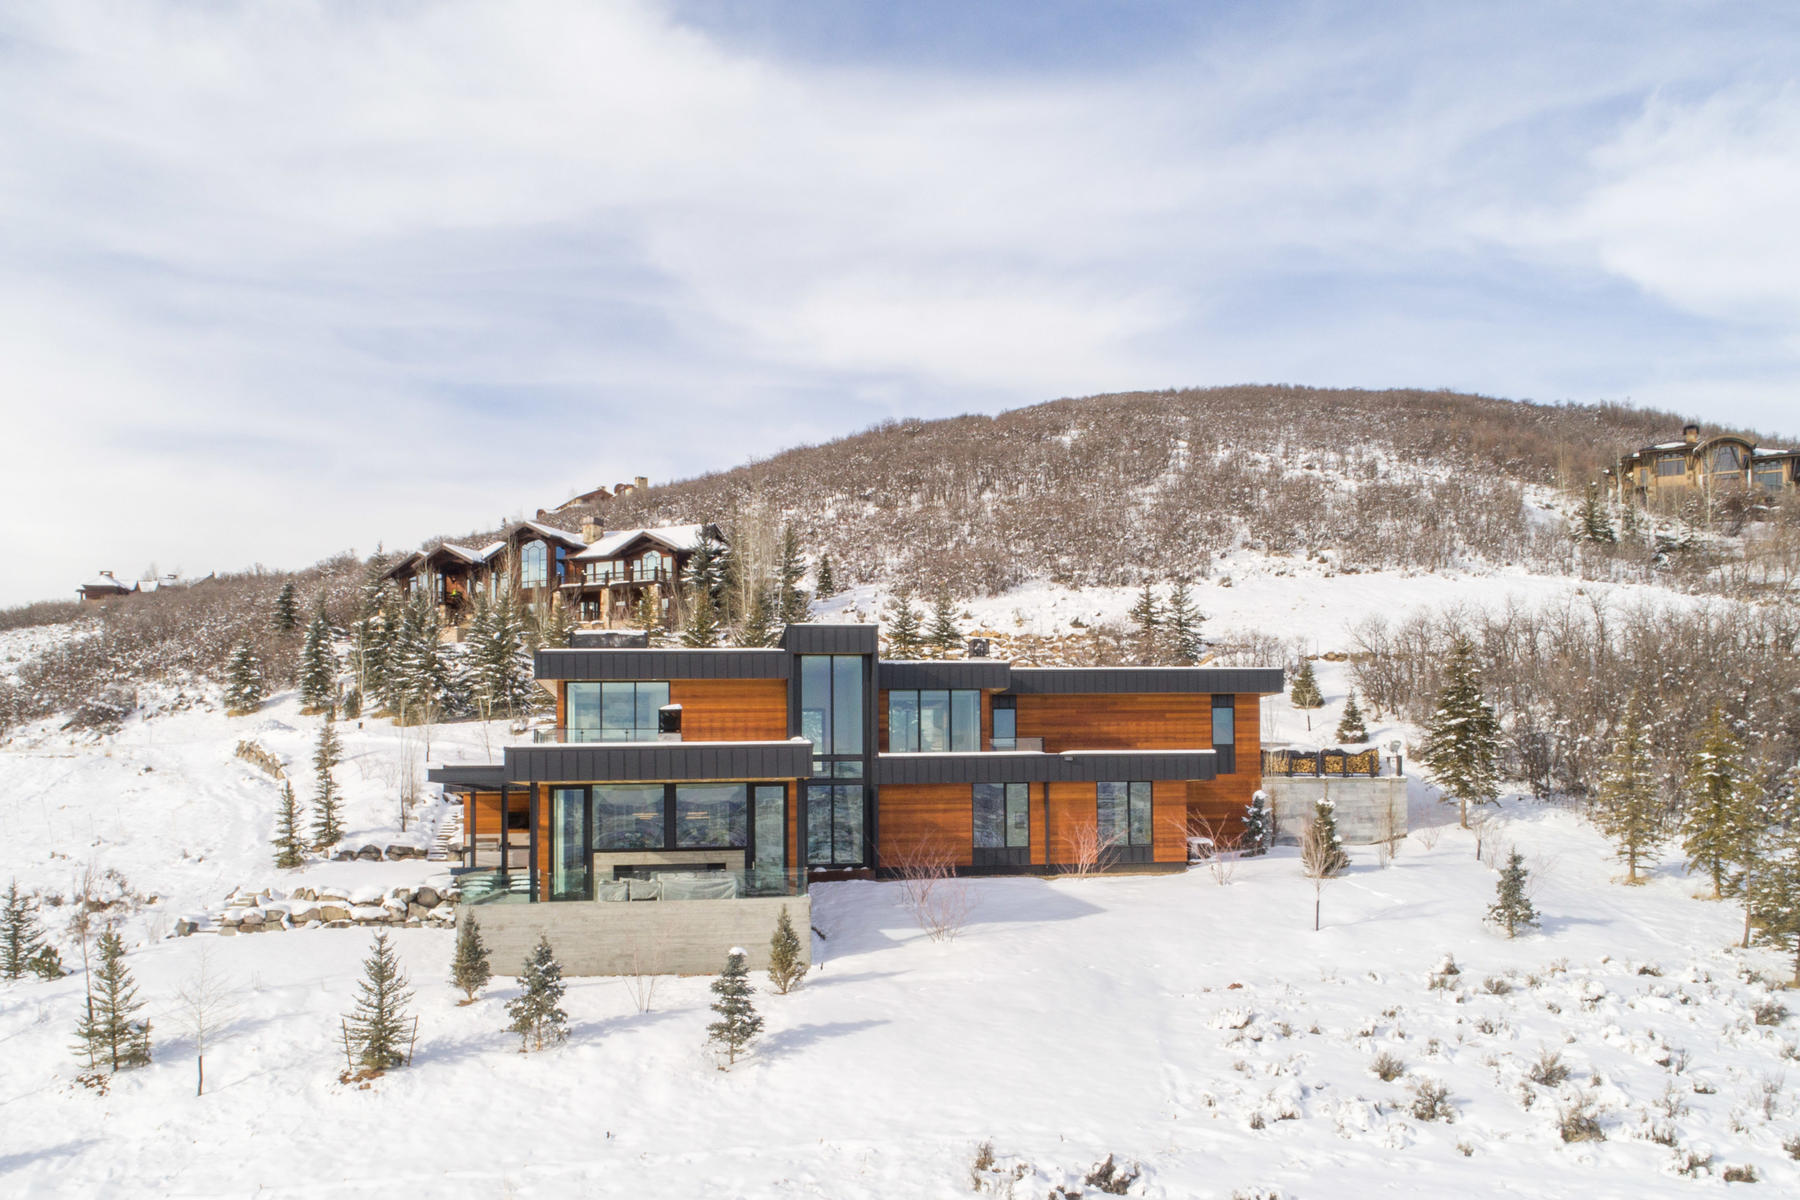 Single Family Home for Sale at Stunning Modern Glenwild Home 7442 Purple Sage Dr, Park City, Utah, 84098 United States